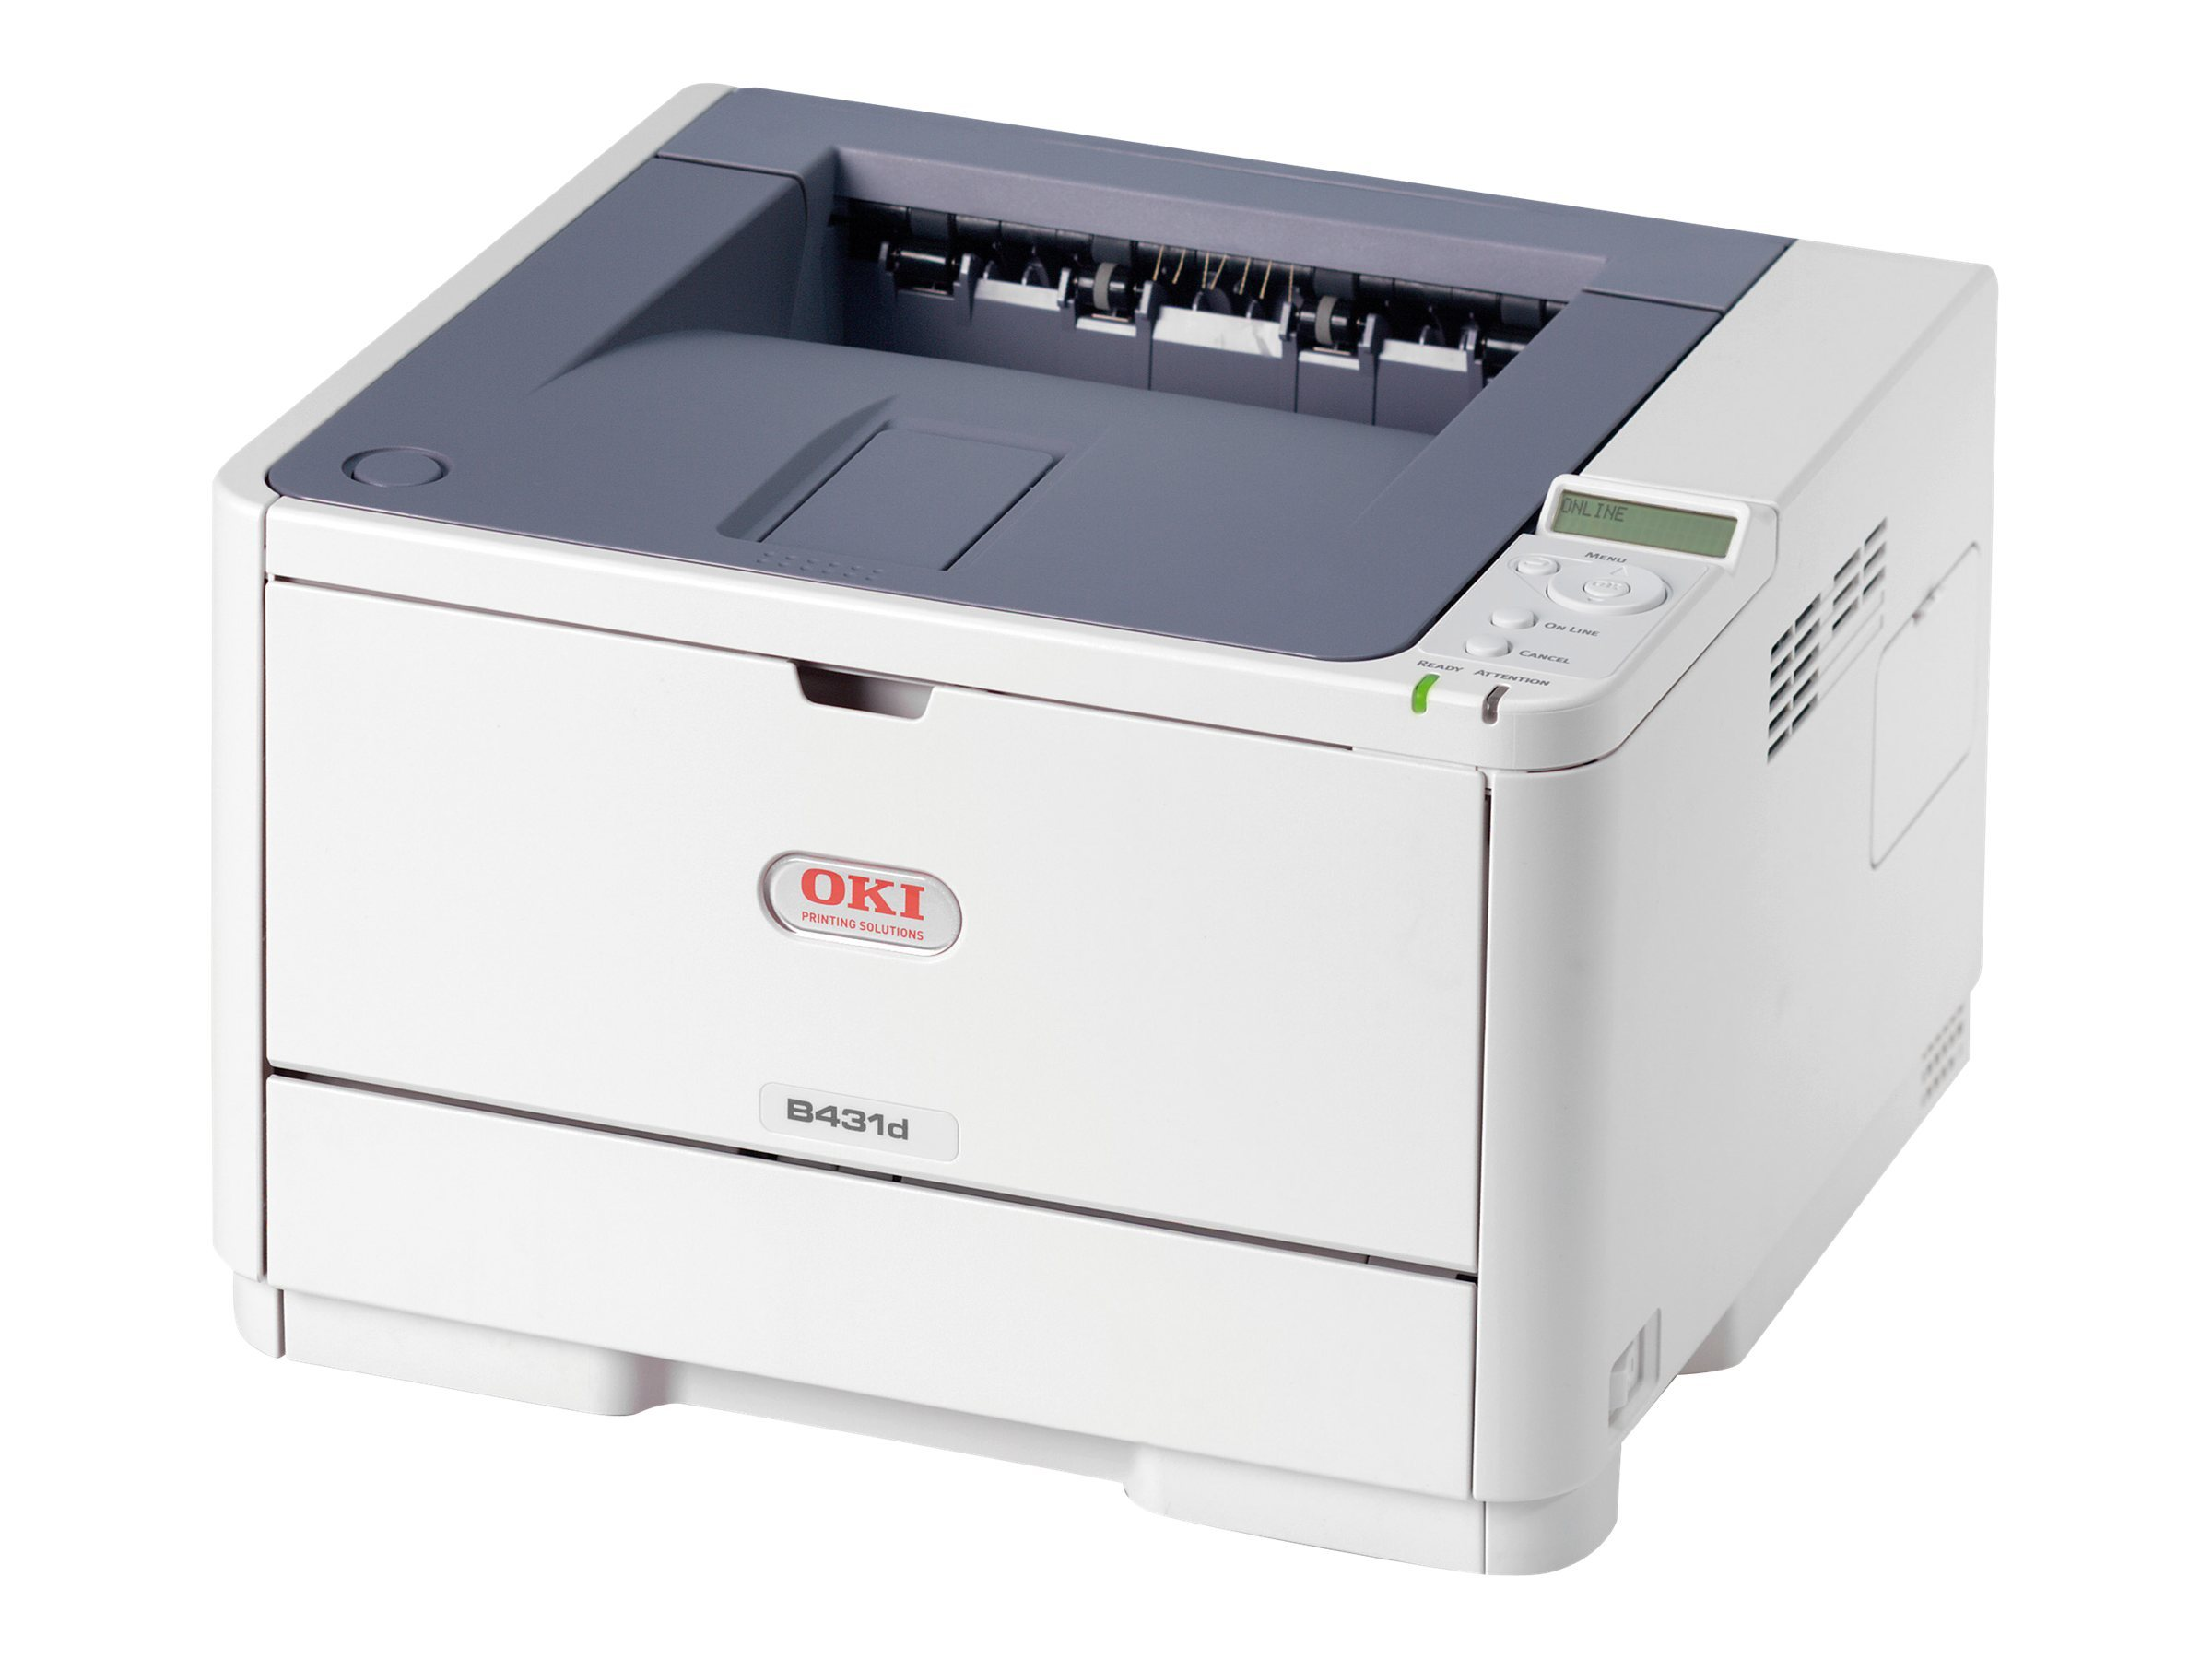 Oki B431d  Laser Printer - Tan (220V), 62435402, 14266192, Printers - Laser & LED (monochrome)